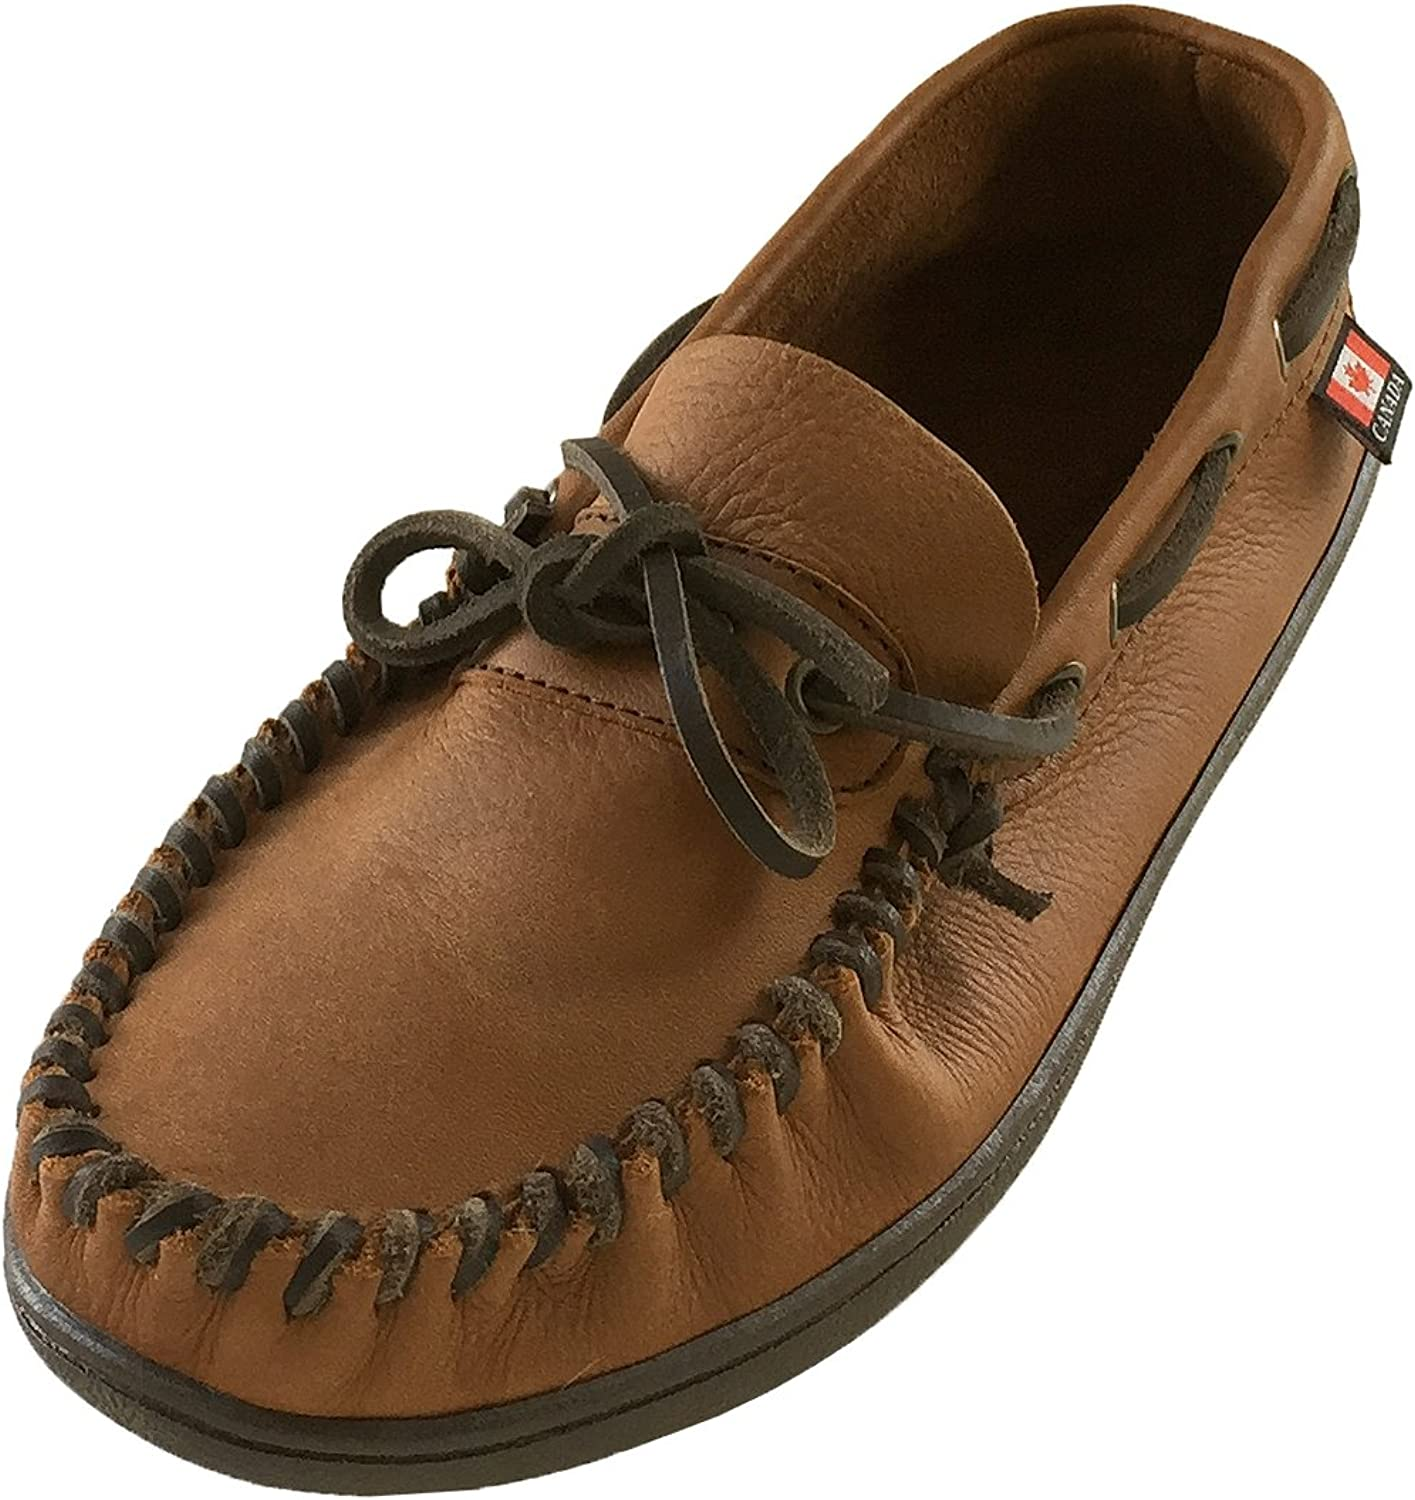 WAKONSUN Men's Wide Width Brown Genuine Leather Loafer Moccasin shoes (10)